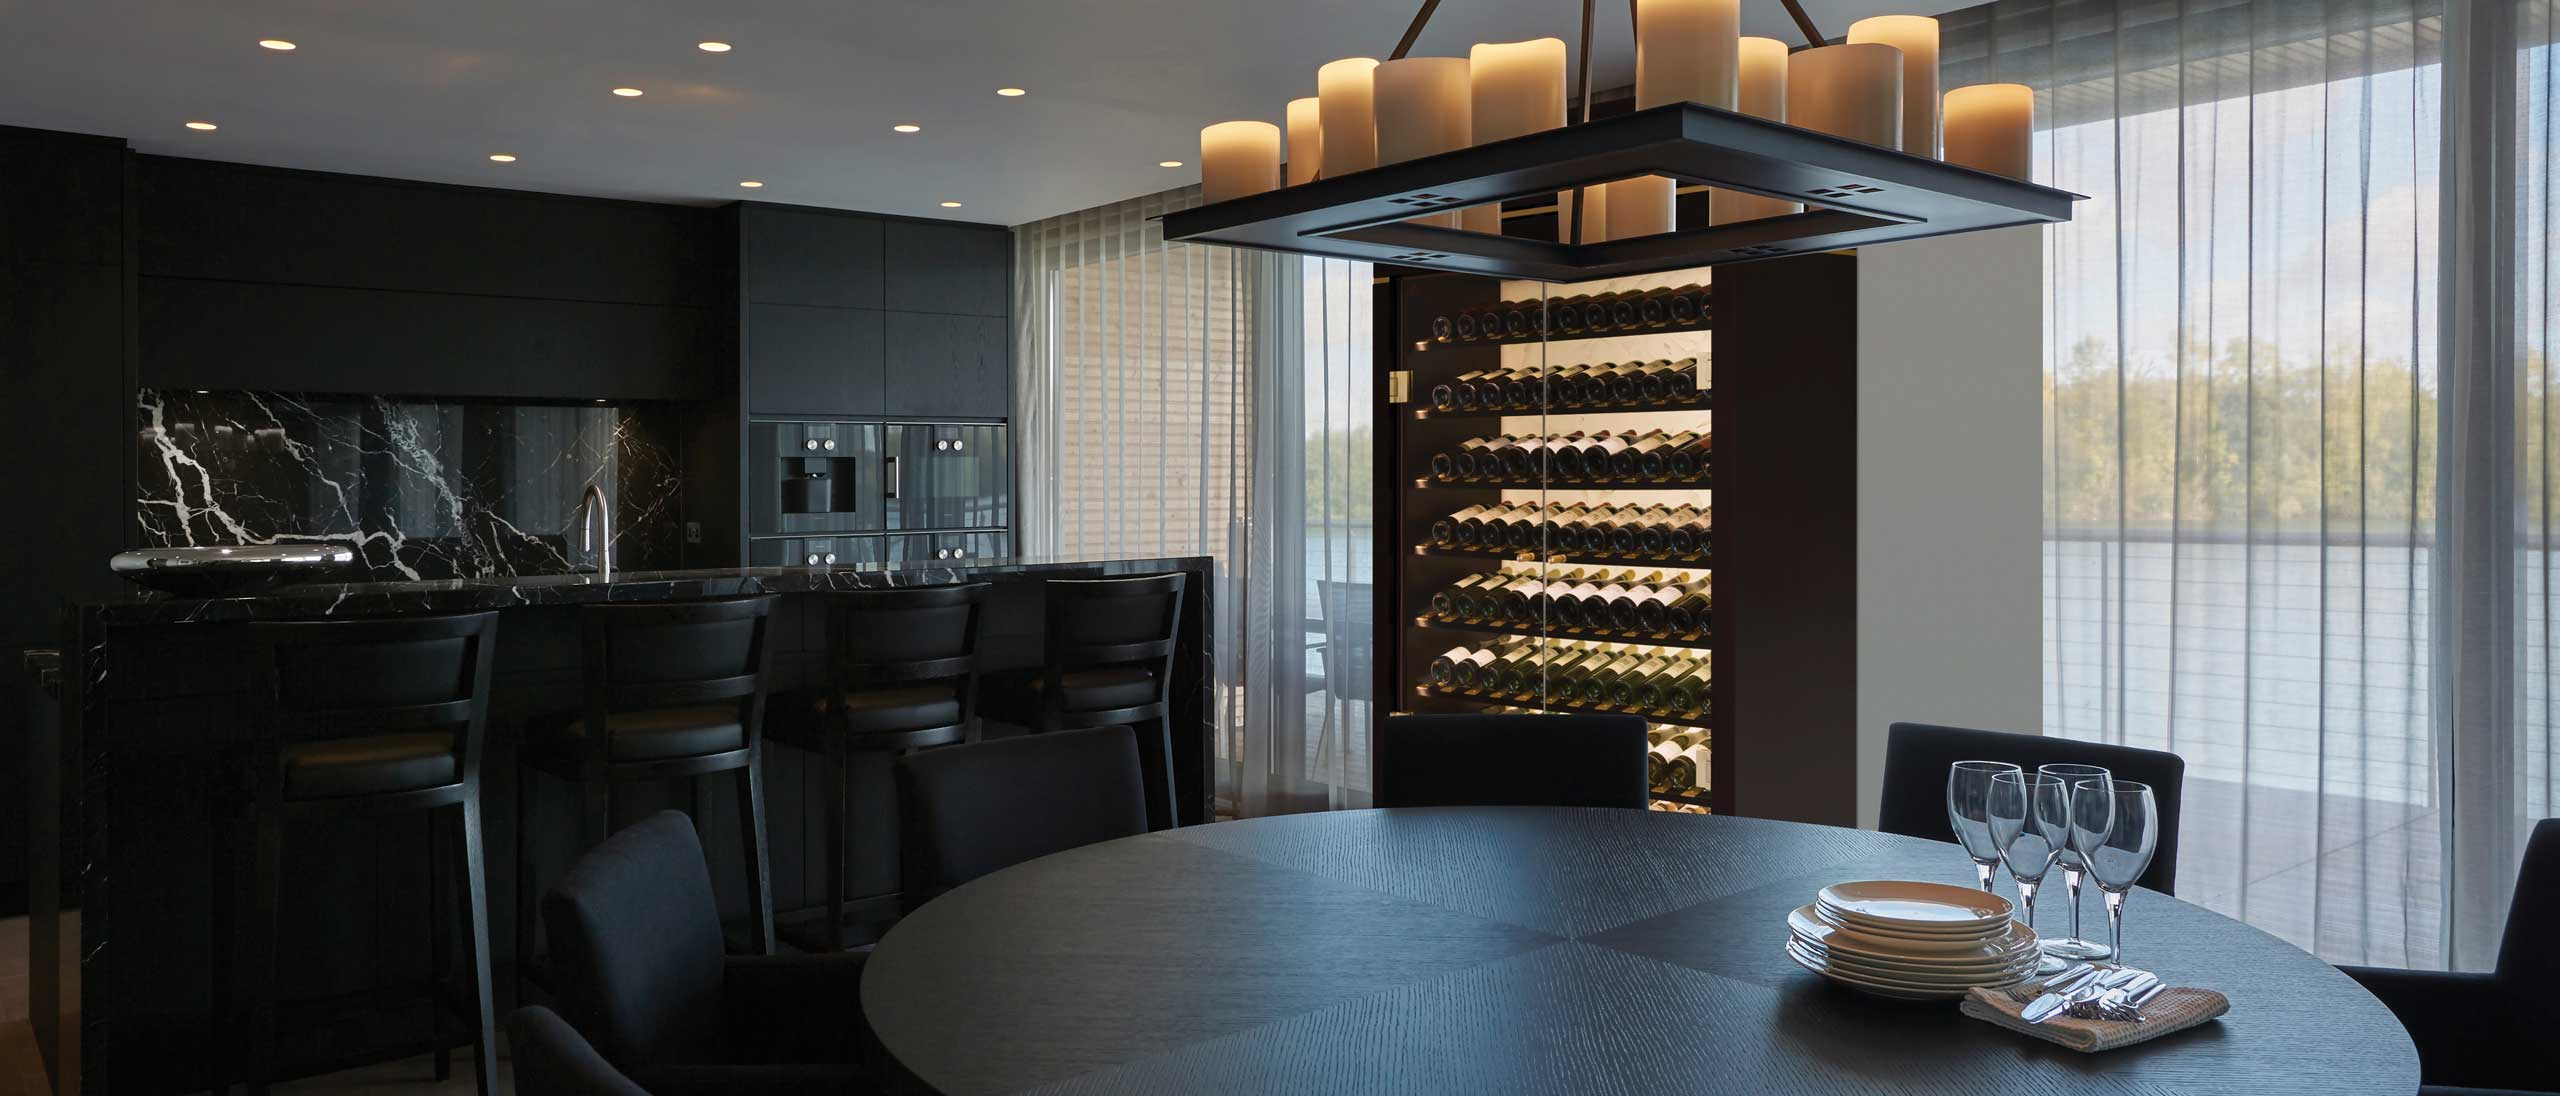 Luxury interior product marketing Spiral Cellars Soho free-standing wine display cabinet roomshot